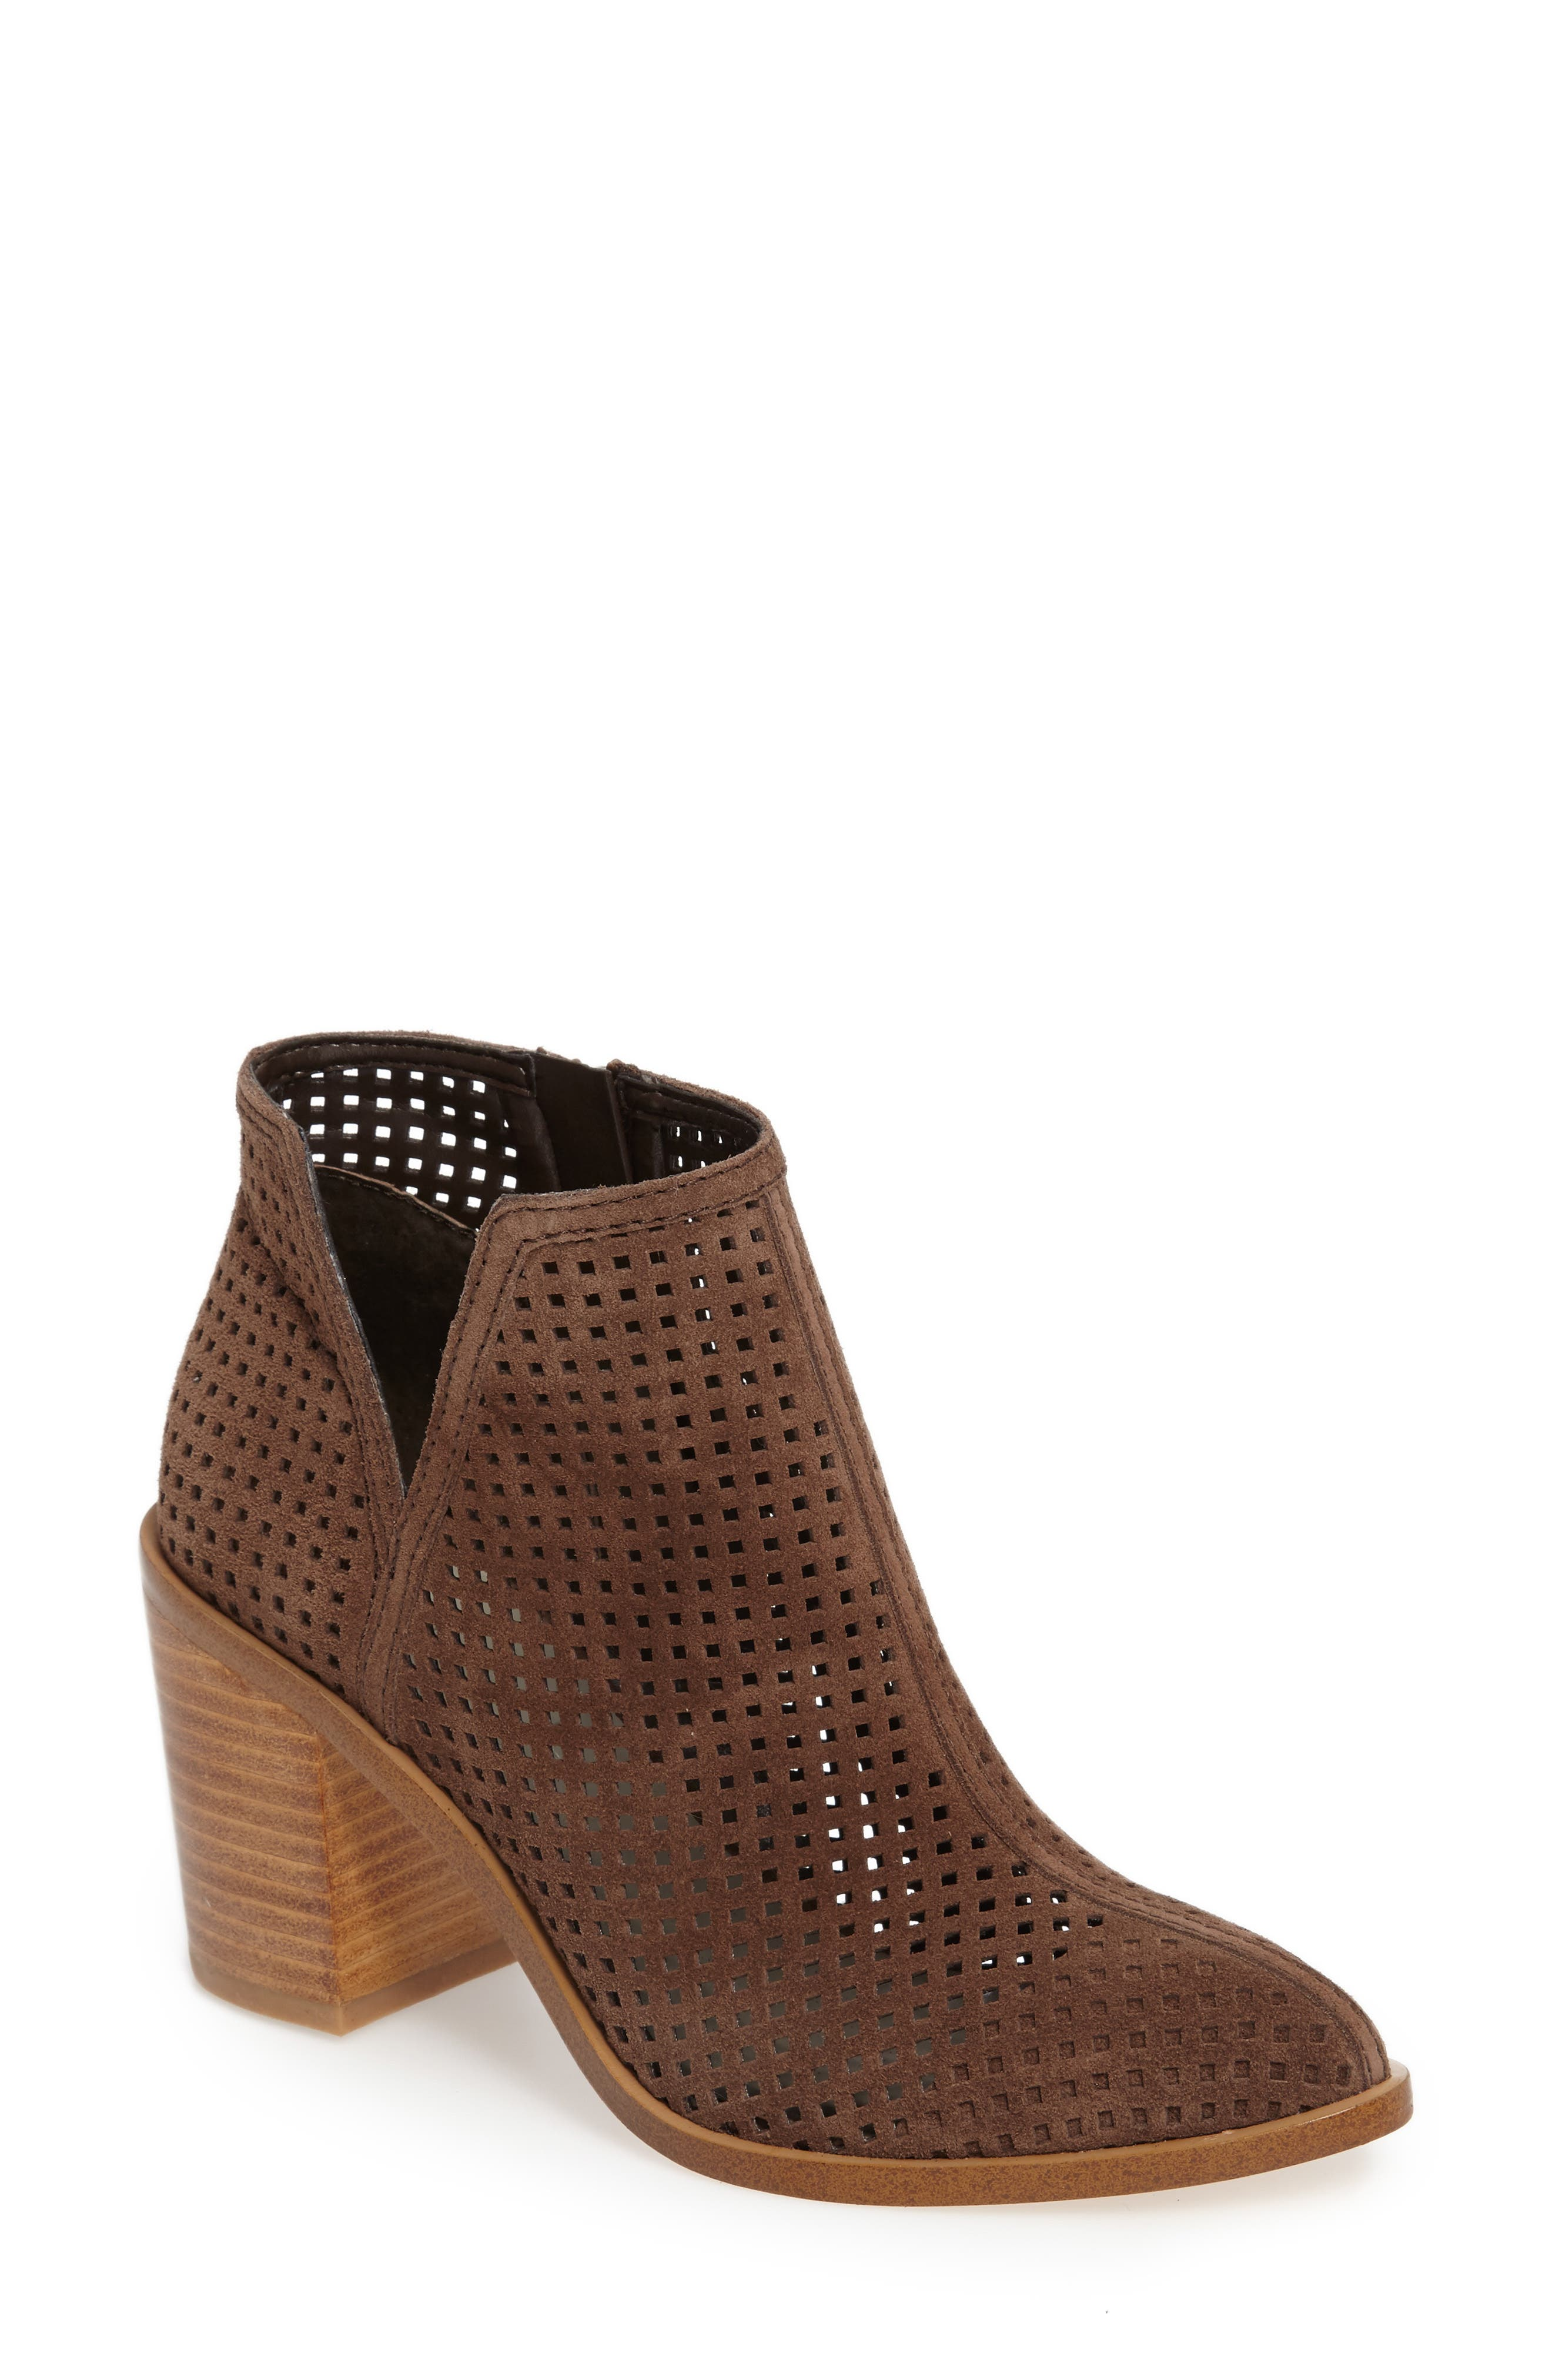 Main Image - 1. STATE Larocka Perforated Bootie (Women)